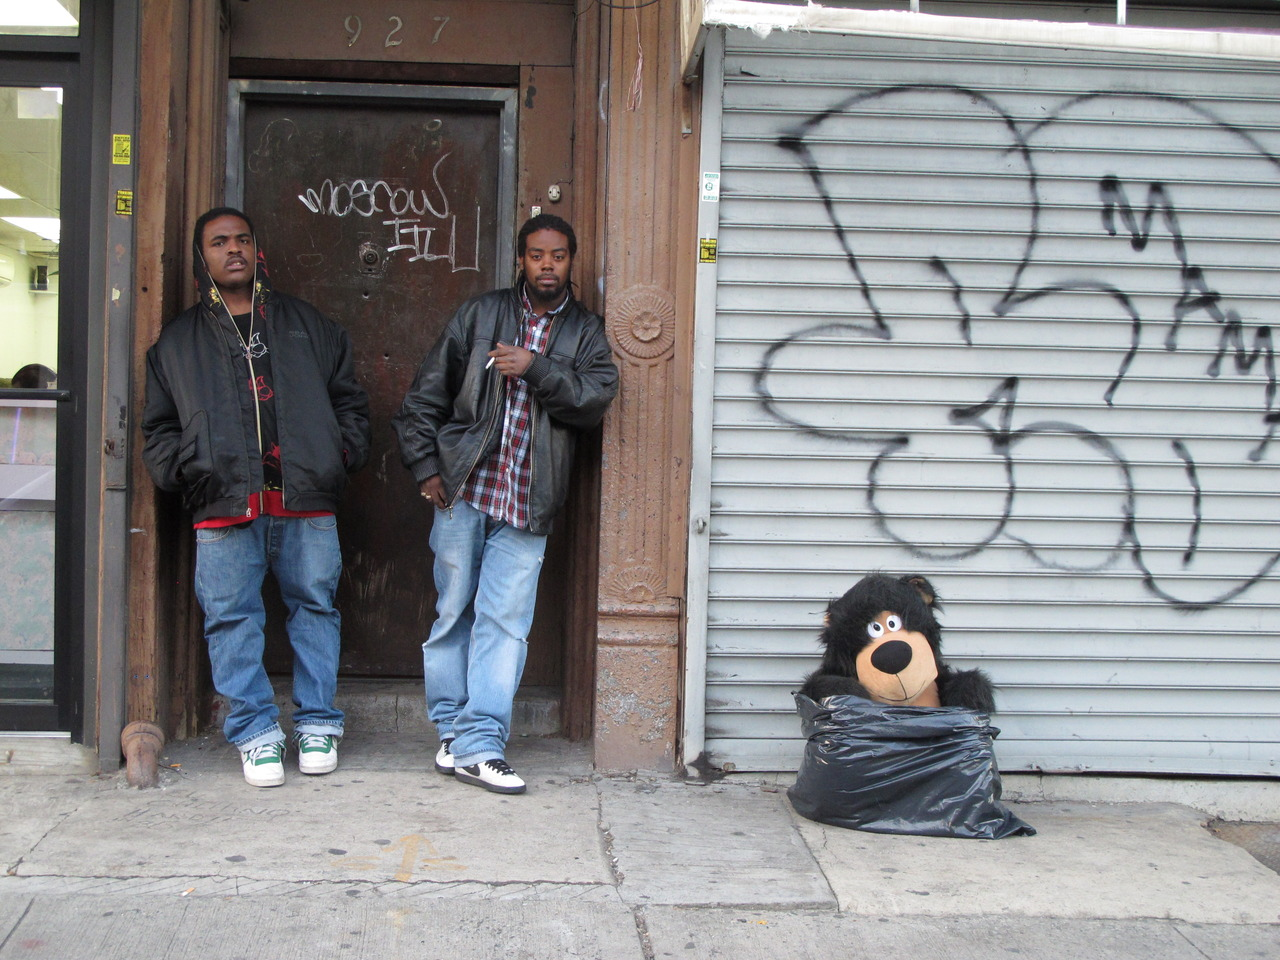 Tough Guys with Teddy Bear In Bag Bedstuy